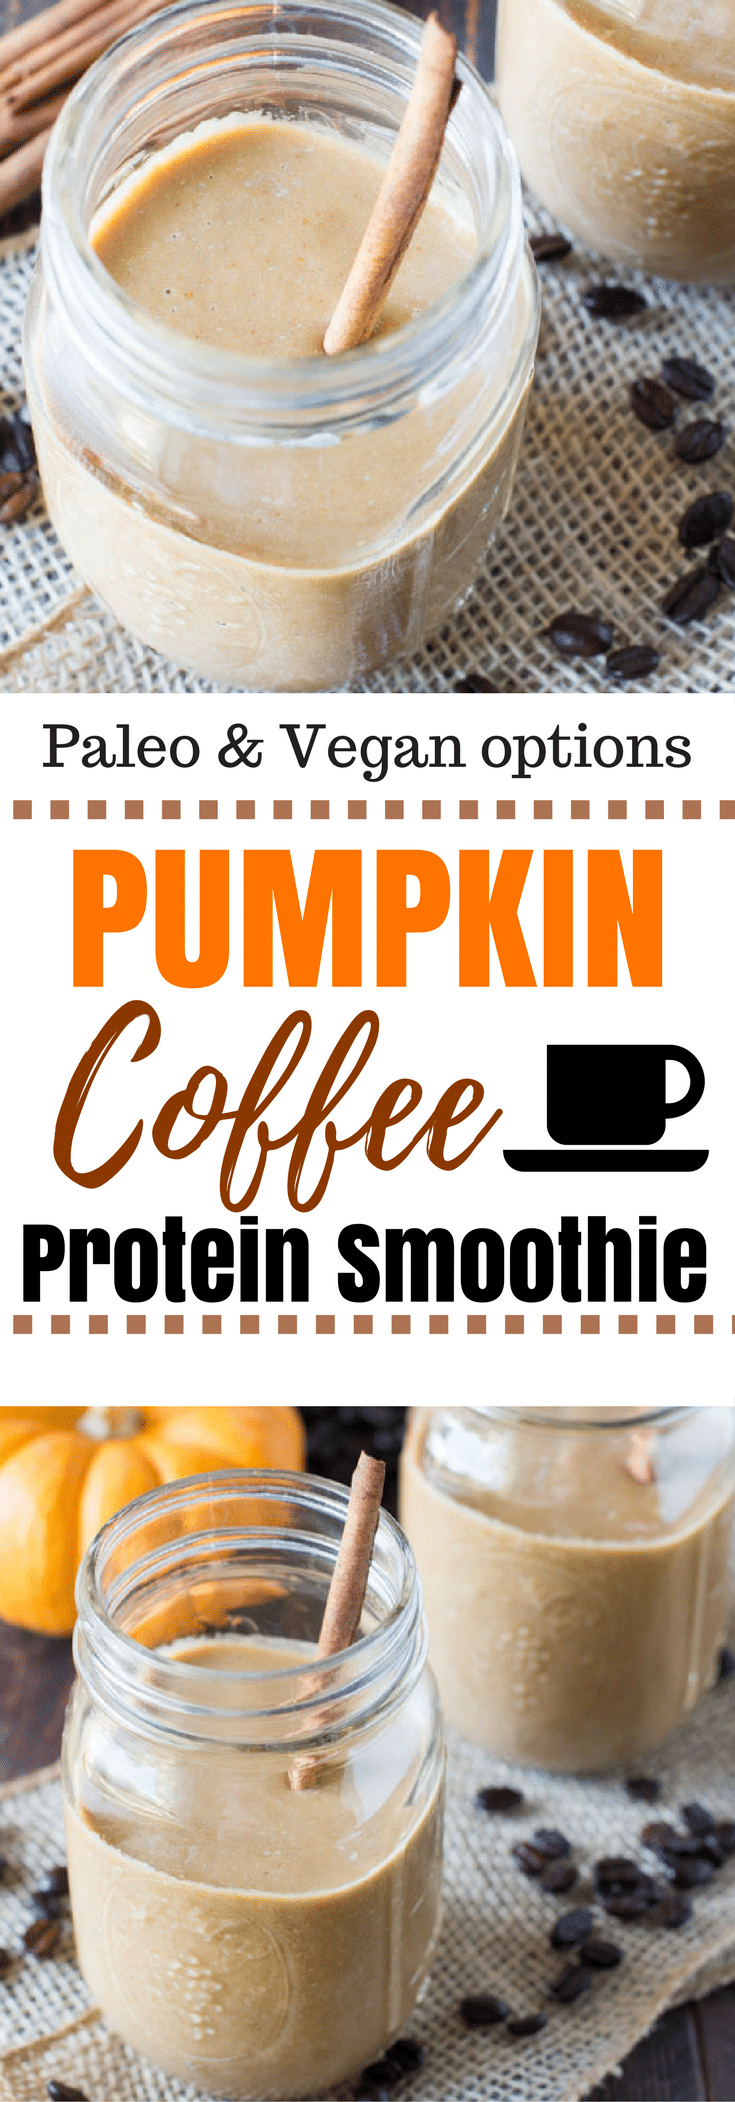 An easy way to enjoy fall, this pumpkin coffee smoothie is made with frozen canned pumpkin, sweetened naturally, and protein to keep you full! #vegan #paleo #primal